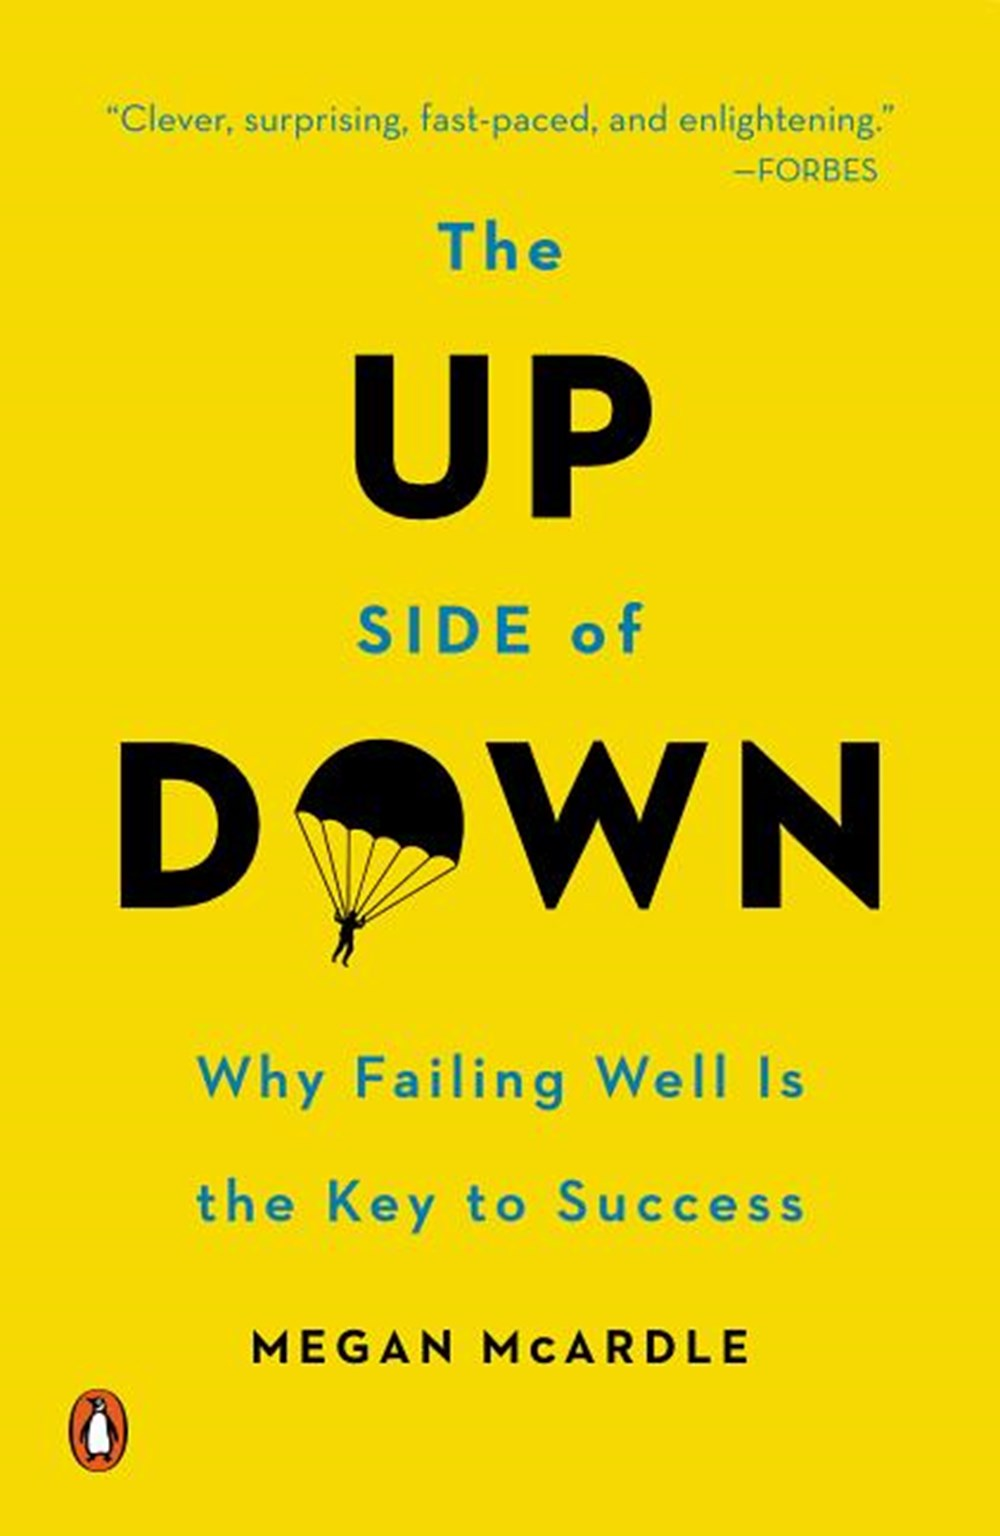 Up Side of Down Why Failing Well Is the Key to Success